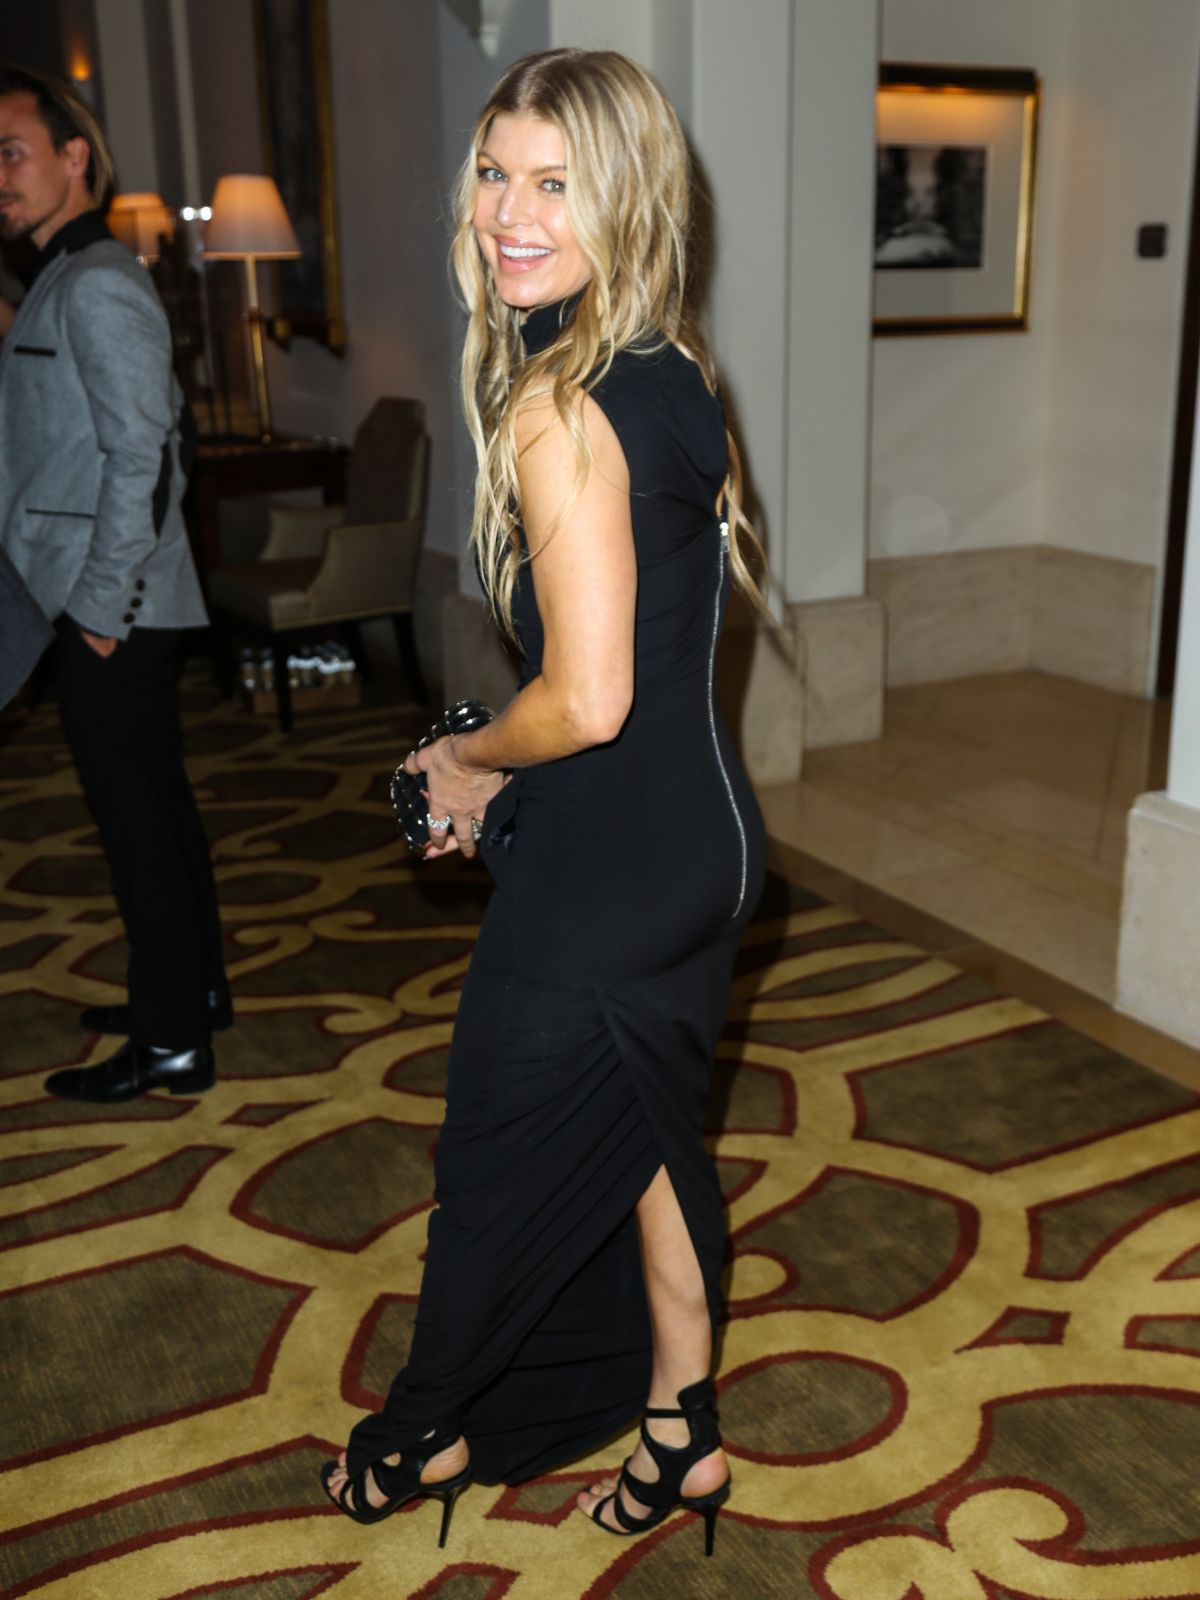 STACY FERGIE FERGUSON at Montage Hotel in Los Angeles 11/07/2015